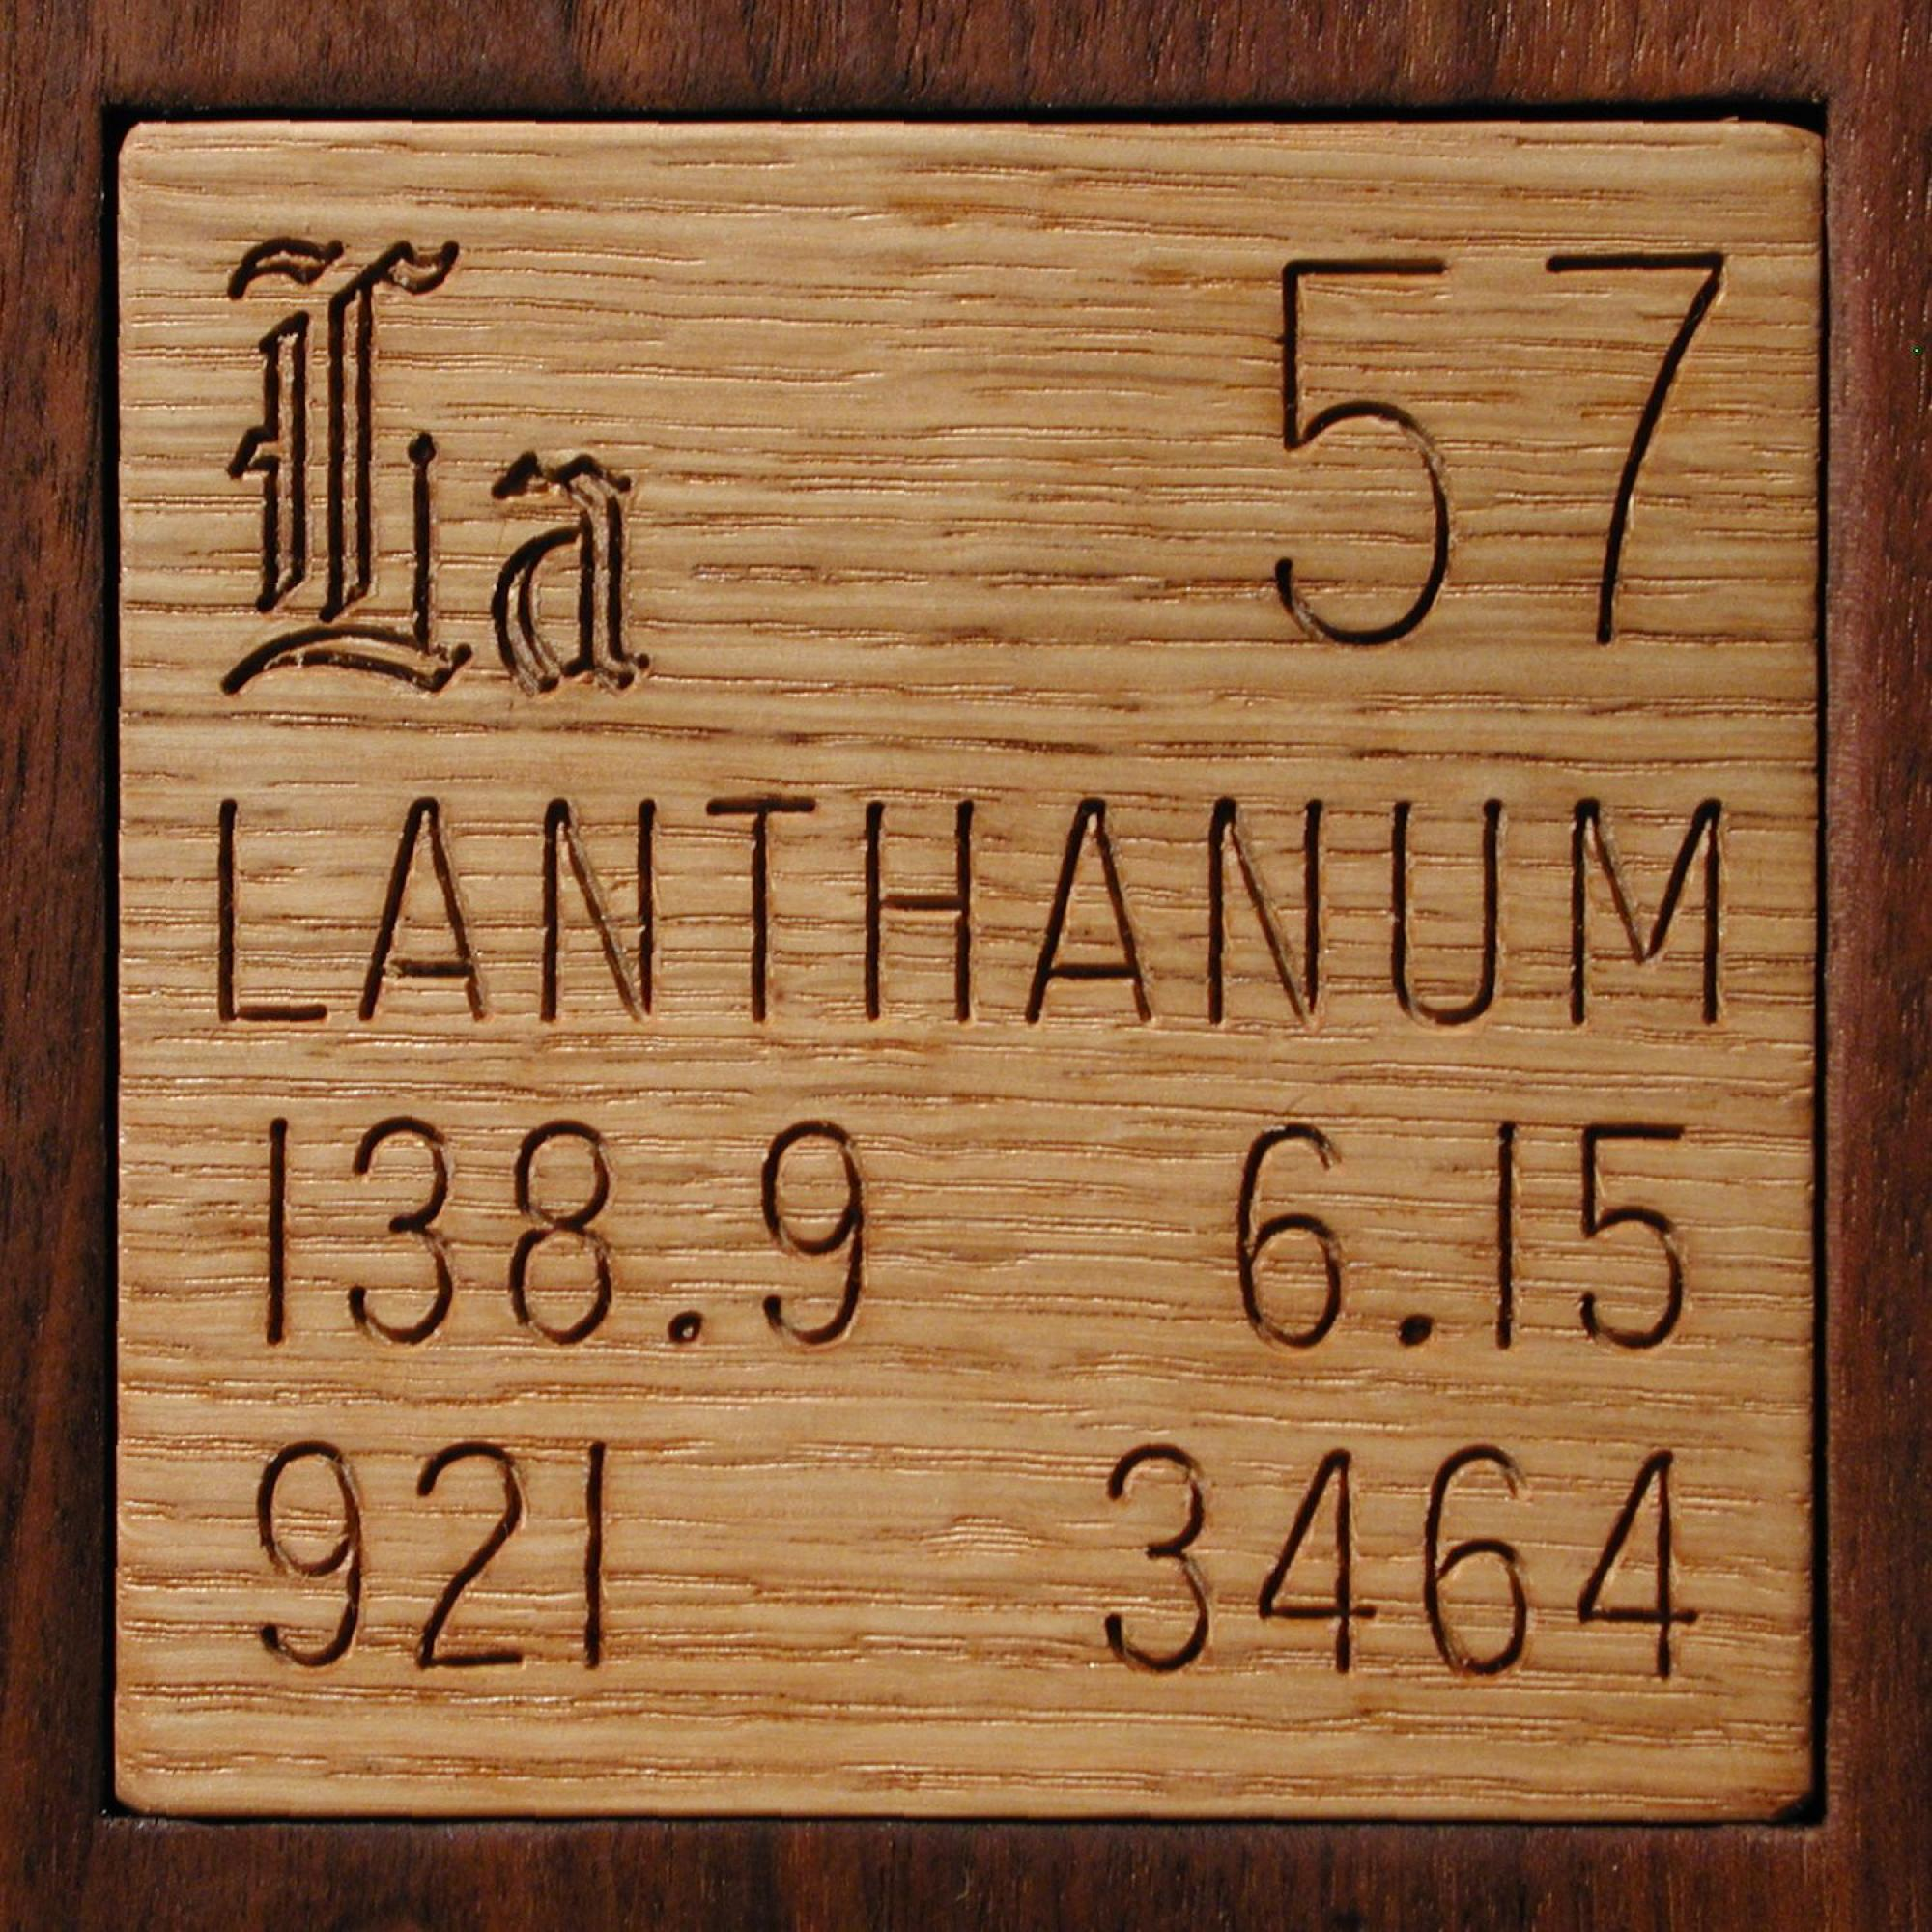 Facts pictures stories about the element lanthanum in the facts pictures stories about the element lanthanum in the periodic table gamestrikefo Choice Image